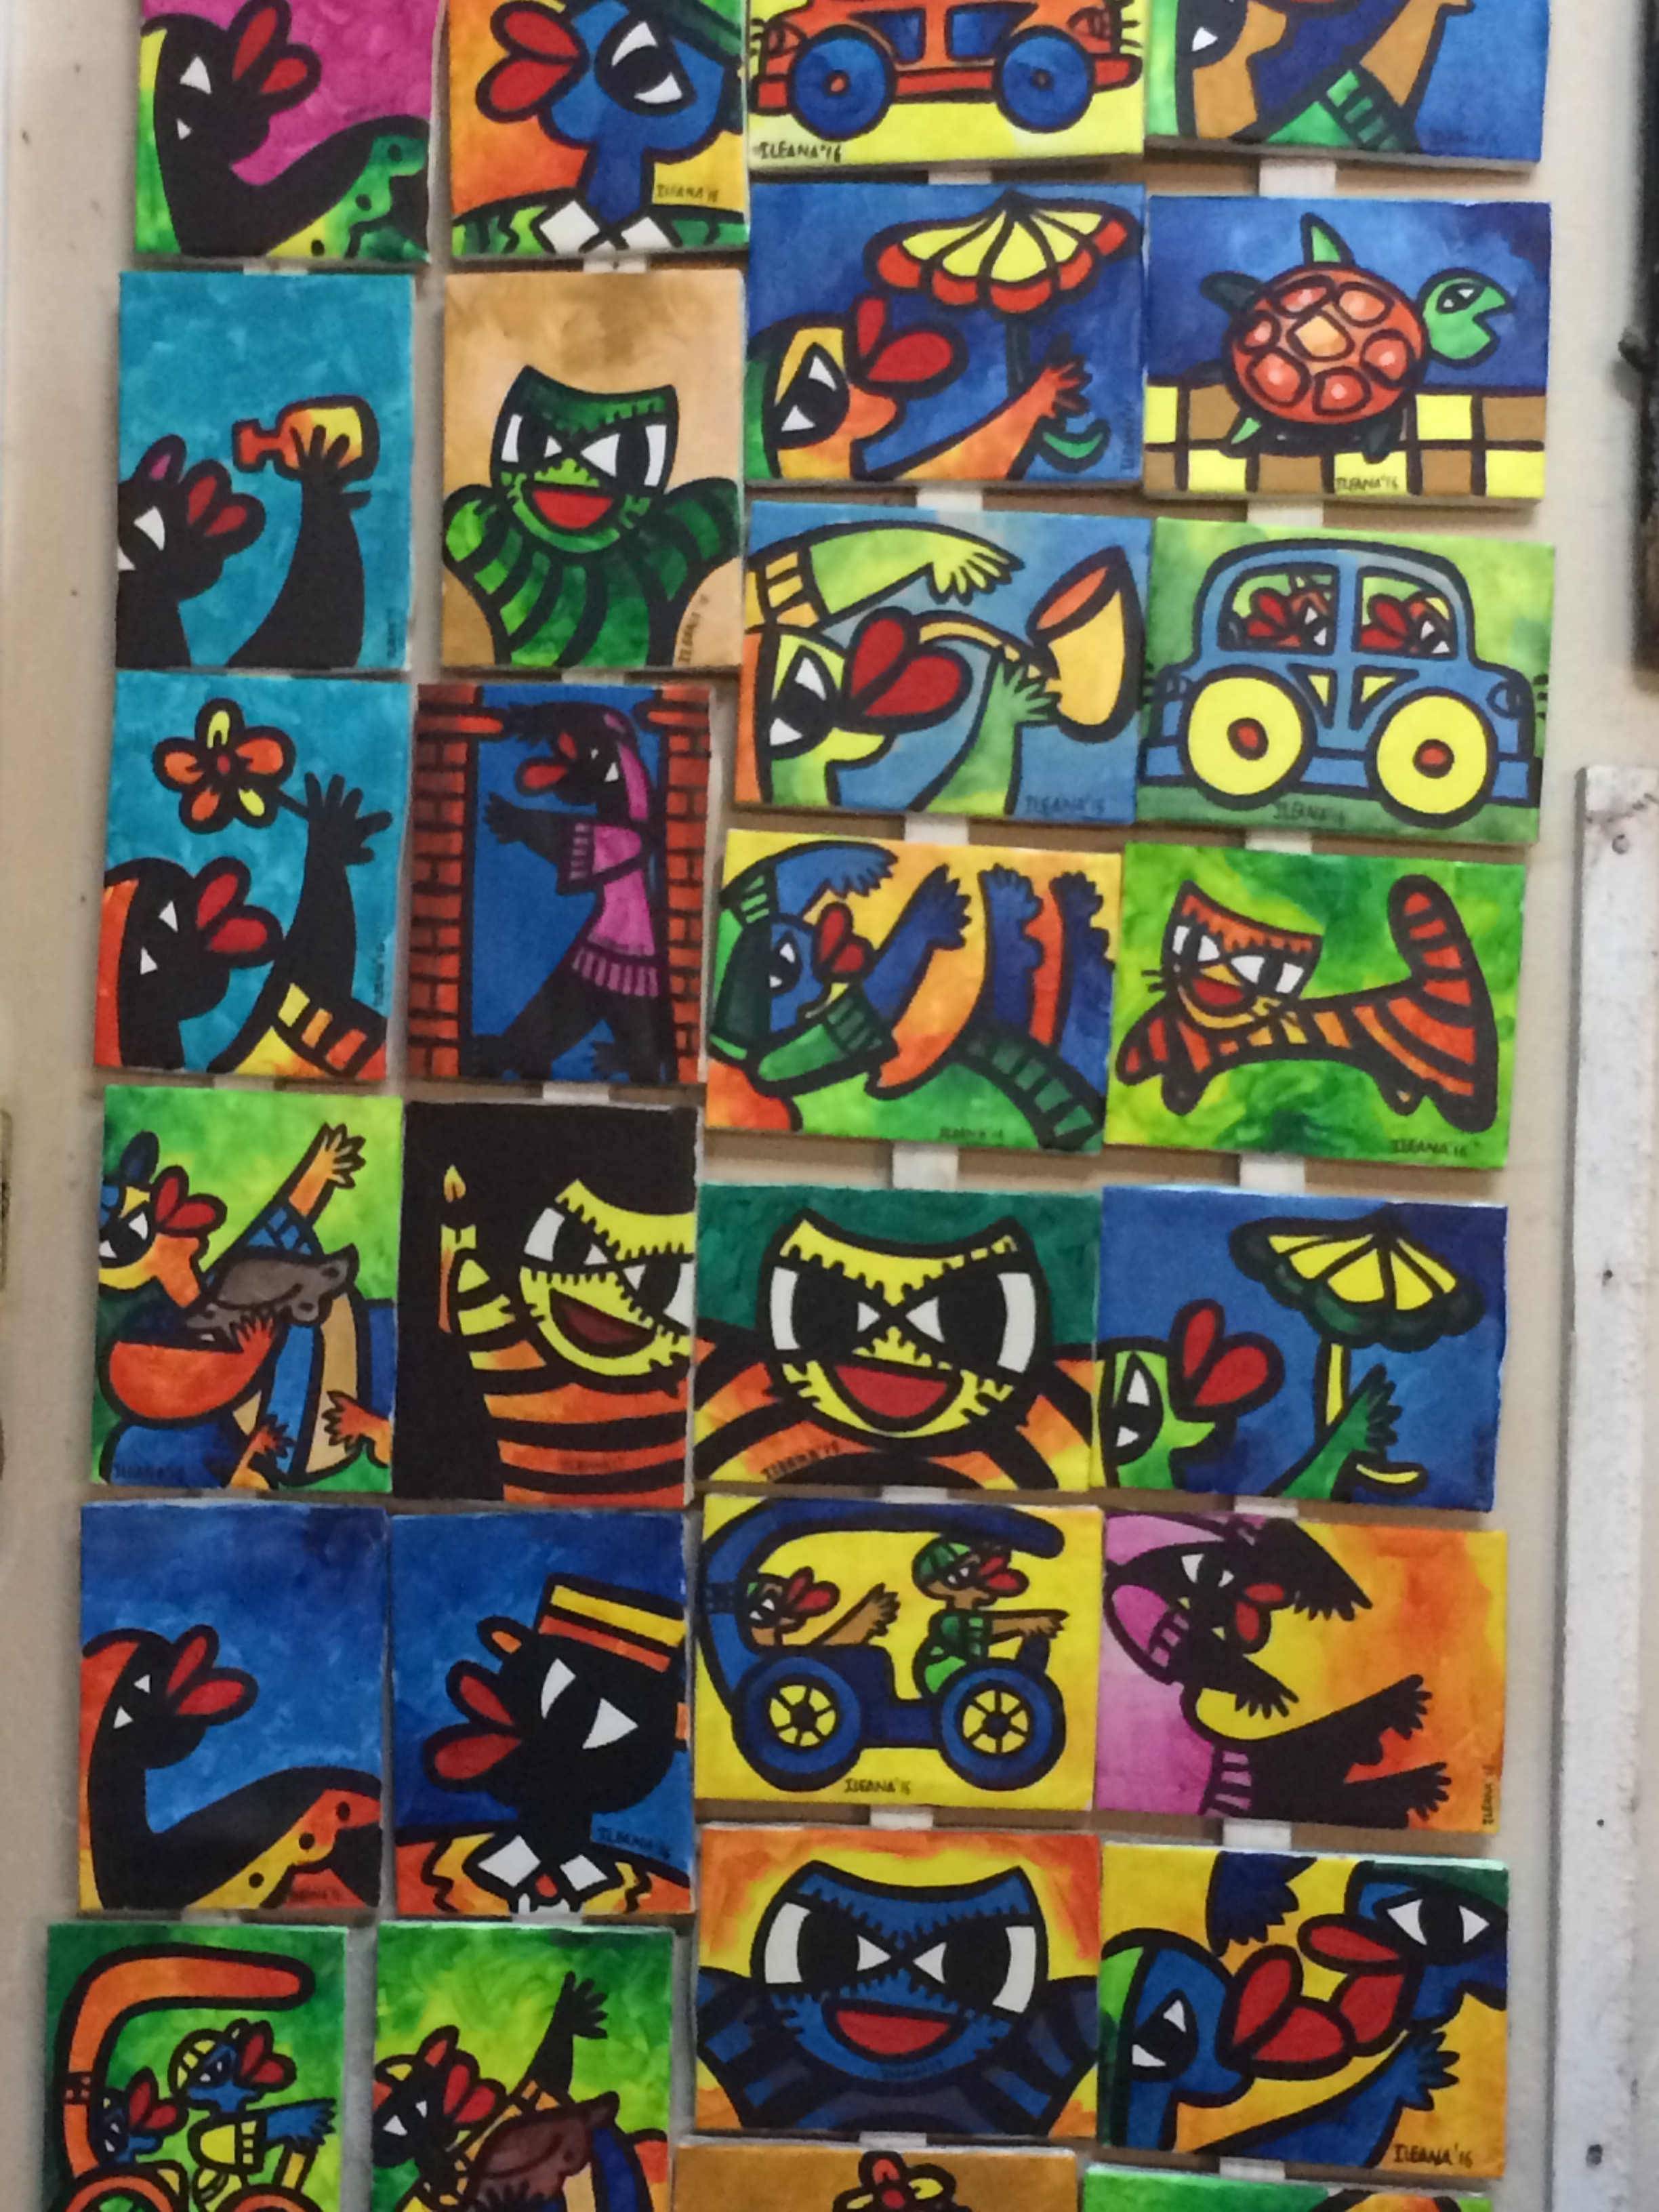 We saw this artist's cat faces in more than one mural (see below)